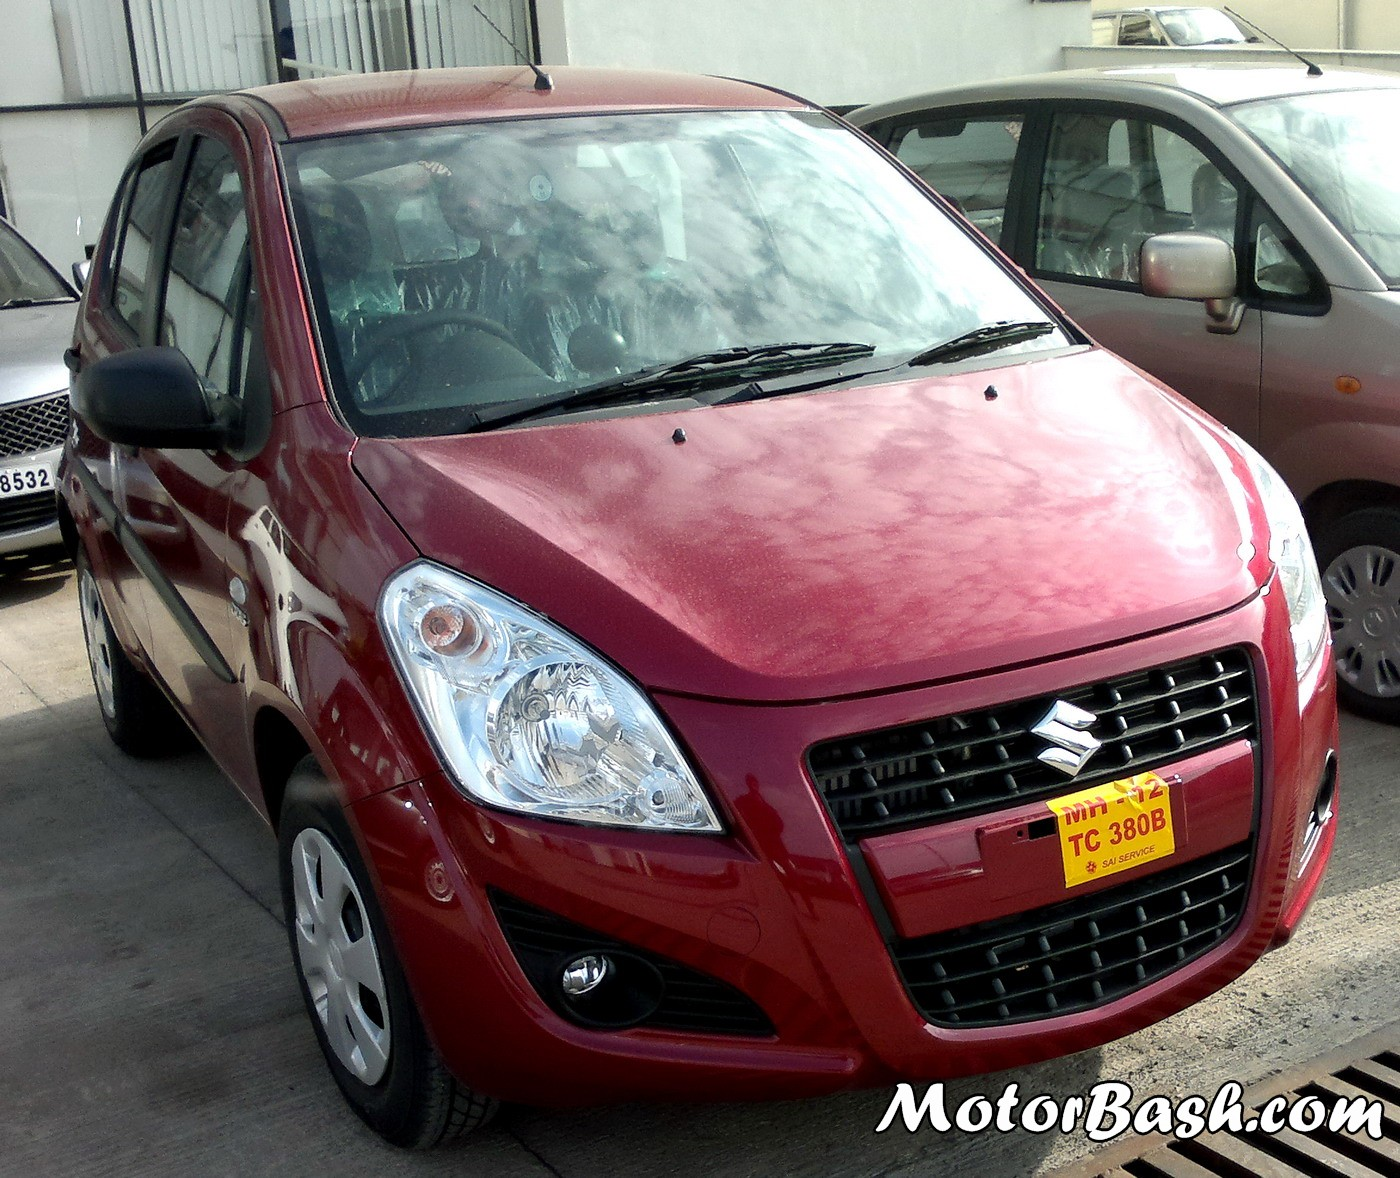 New_Maruti_Ritz_Review_by_MotorBash